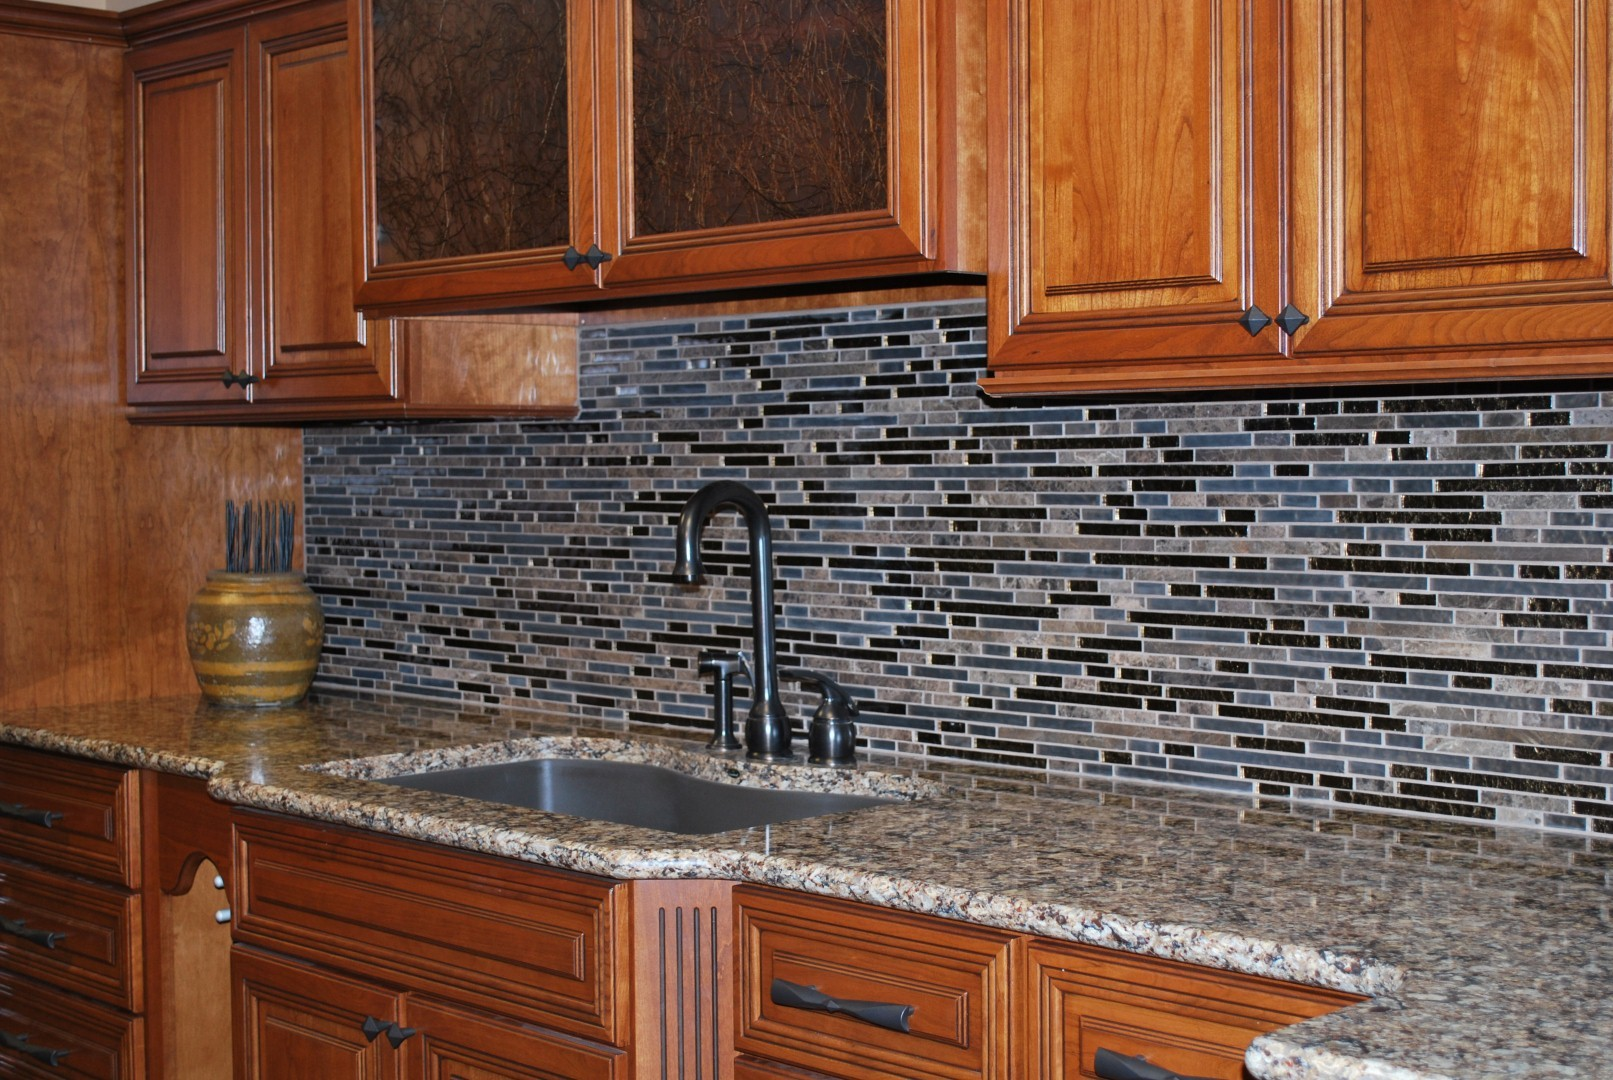 Awesome Kitchen Decor With Wooden Kitchen Cabinet And Granite Countertop Plus Mosaic Tile Backsplash With Schluter Strip Ideas